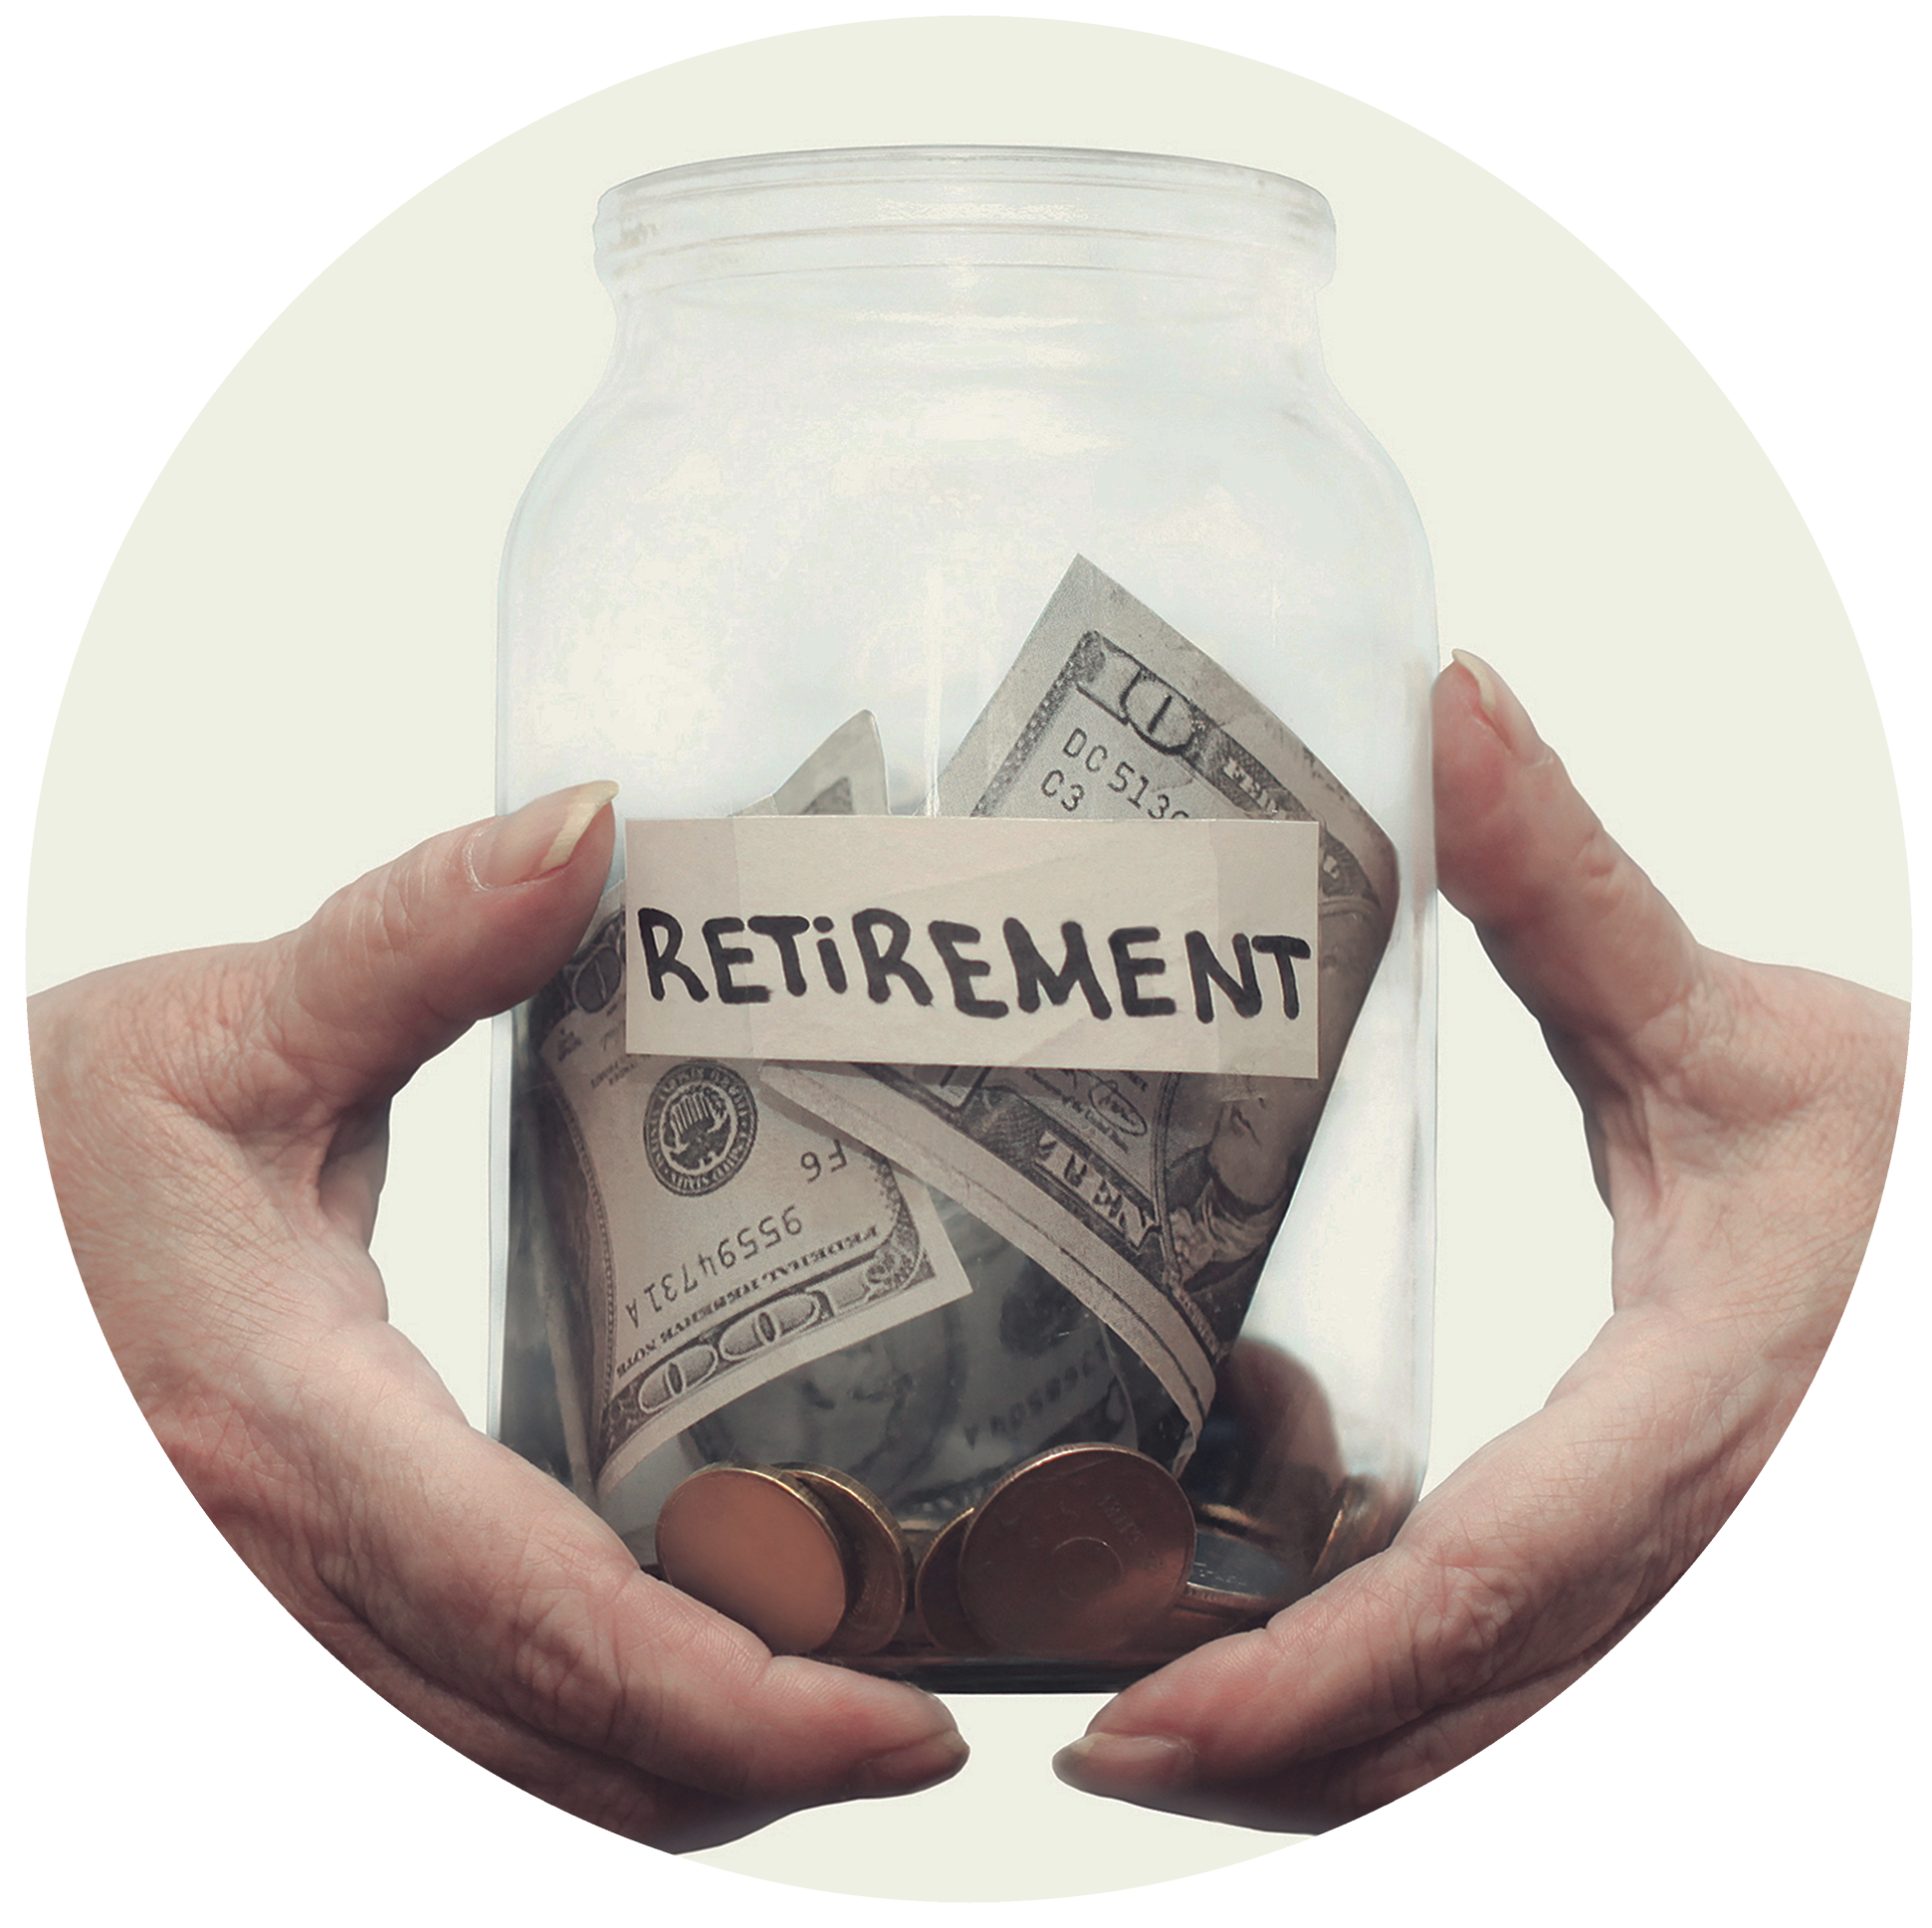 Retirement_saving_jar_cir